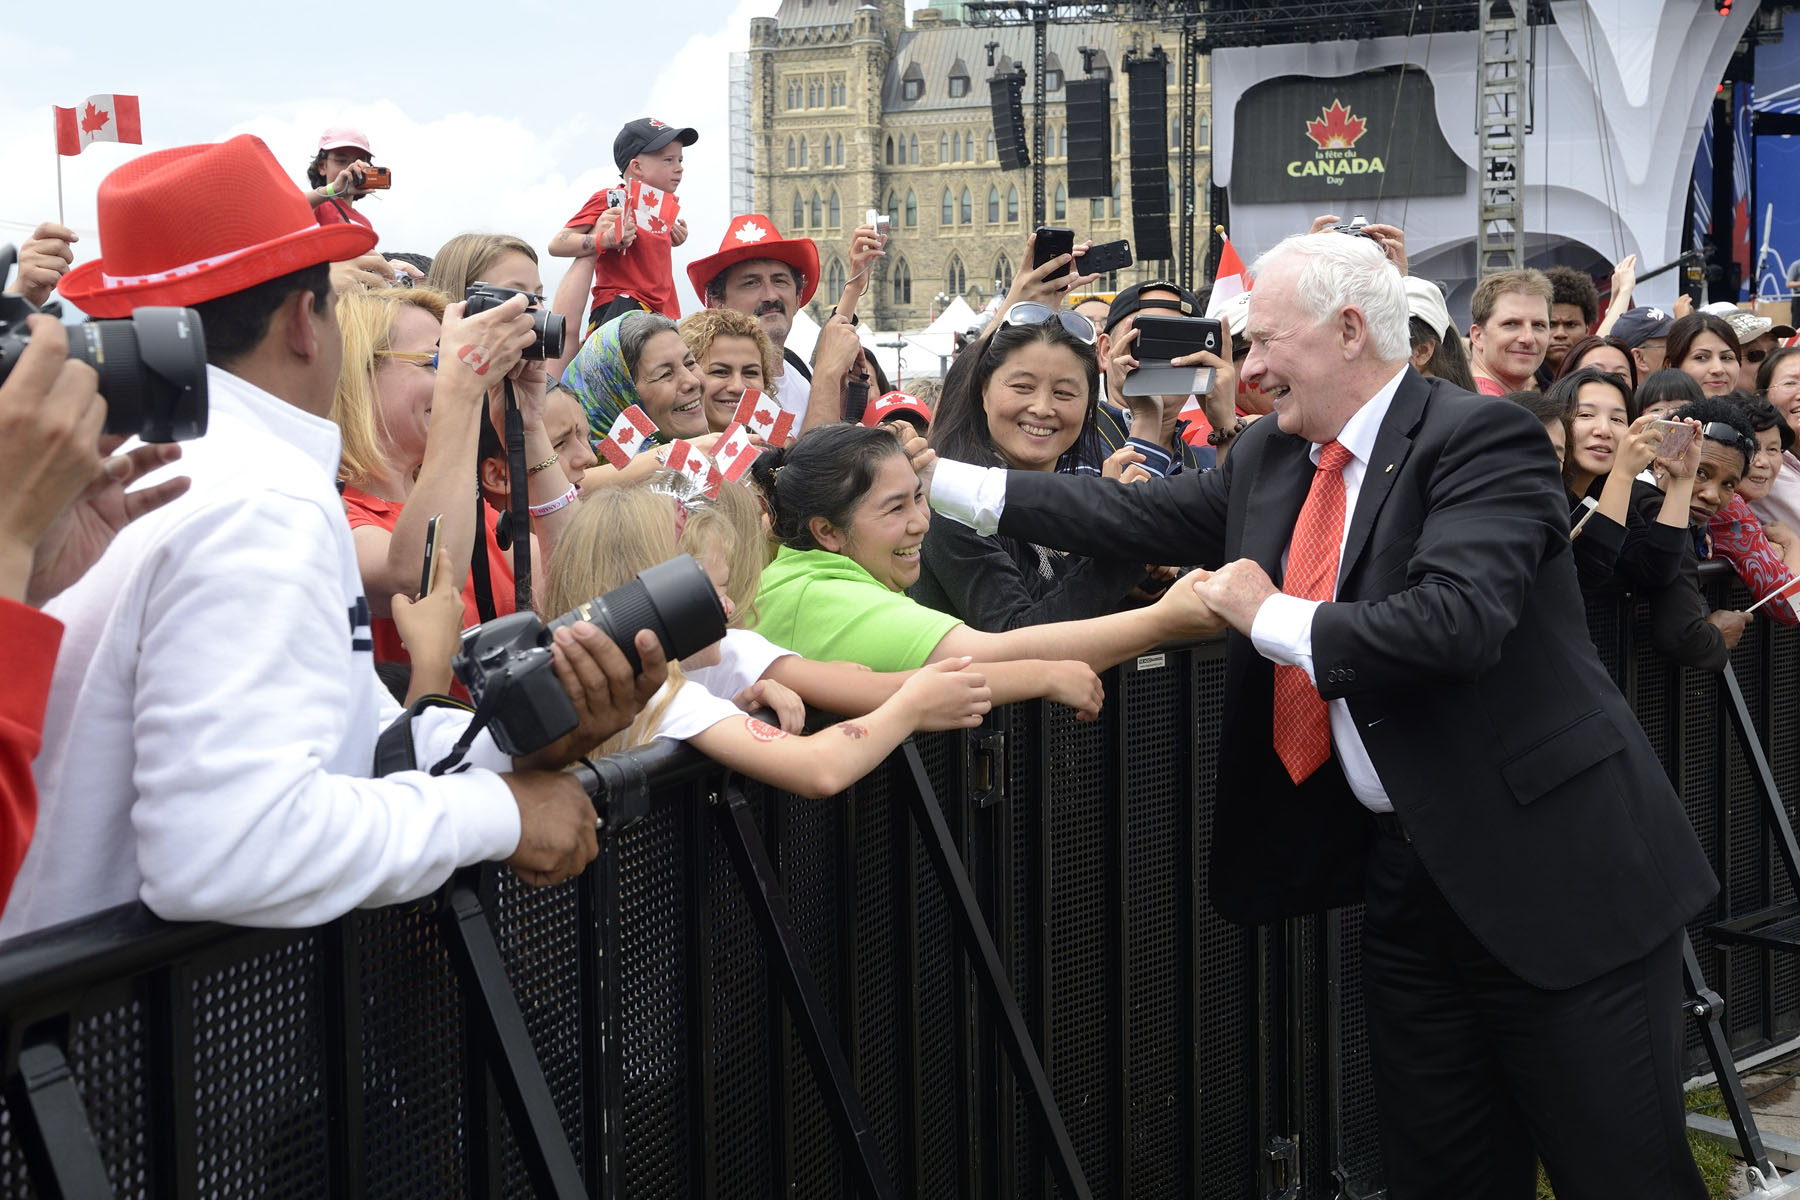 His Excellency was pleased to see such a large crowd that gathered to celebrate Canada Day.